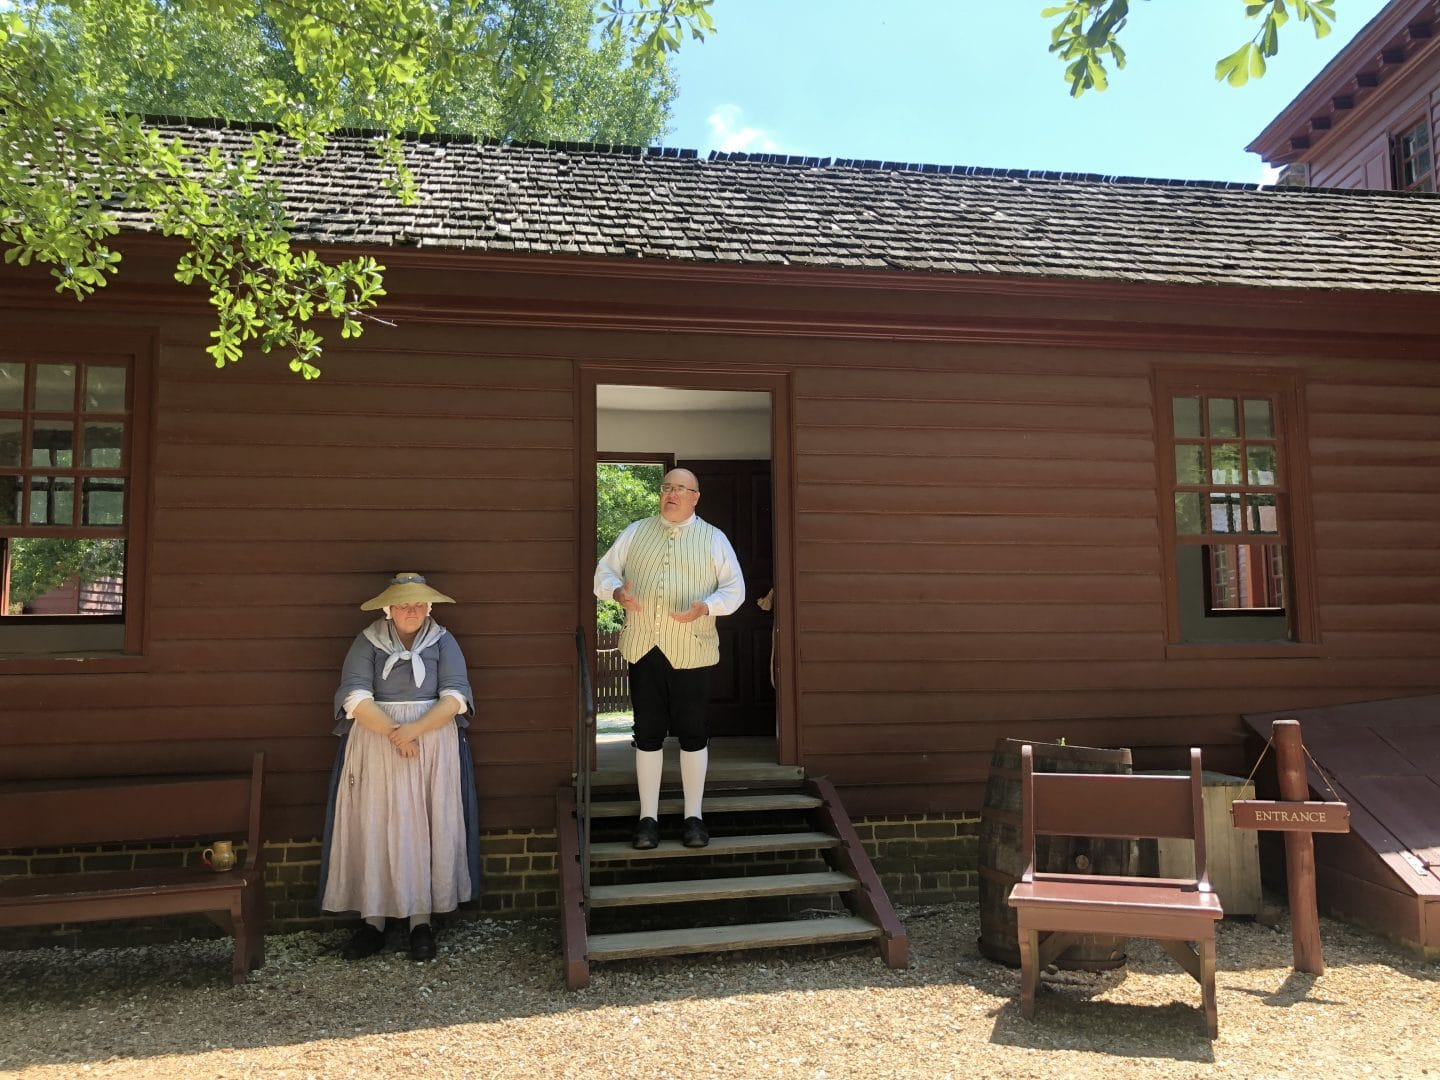 Randolph House in Colonial Williamsburg Virginia